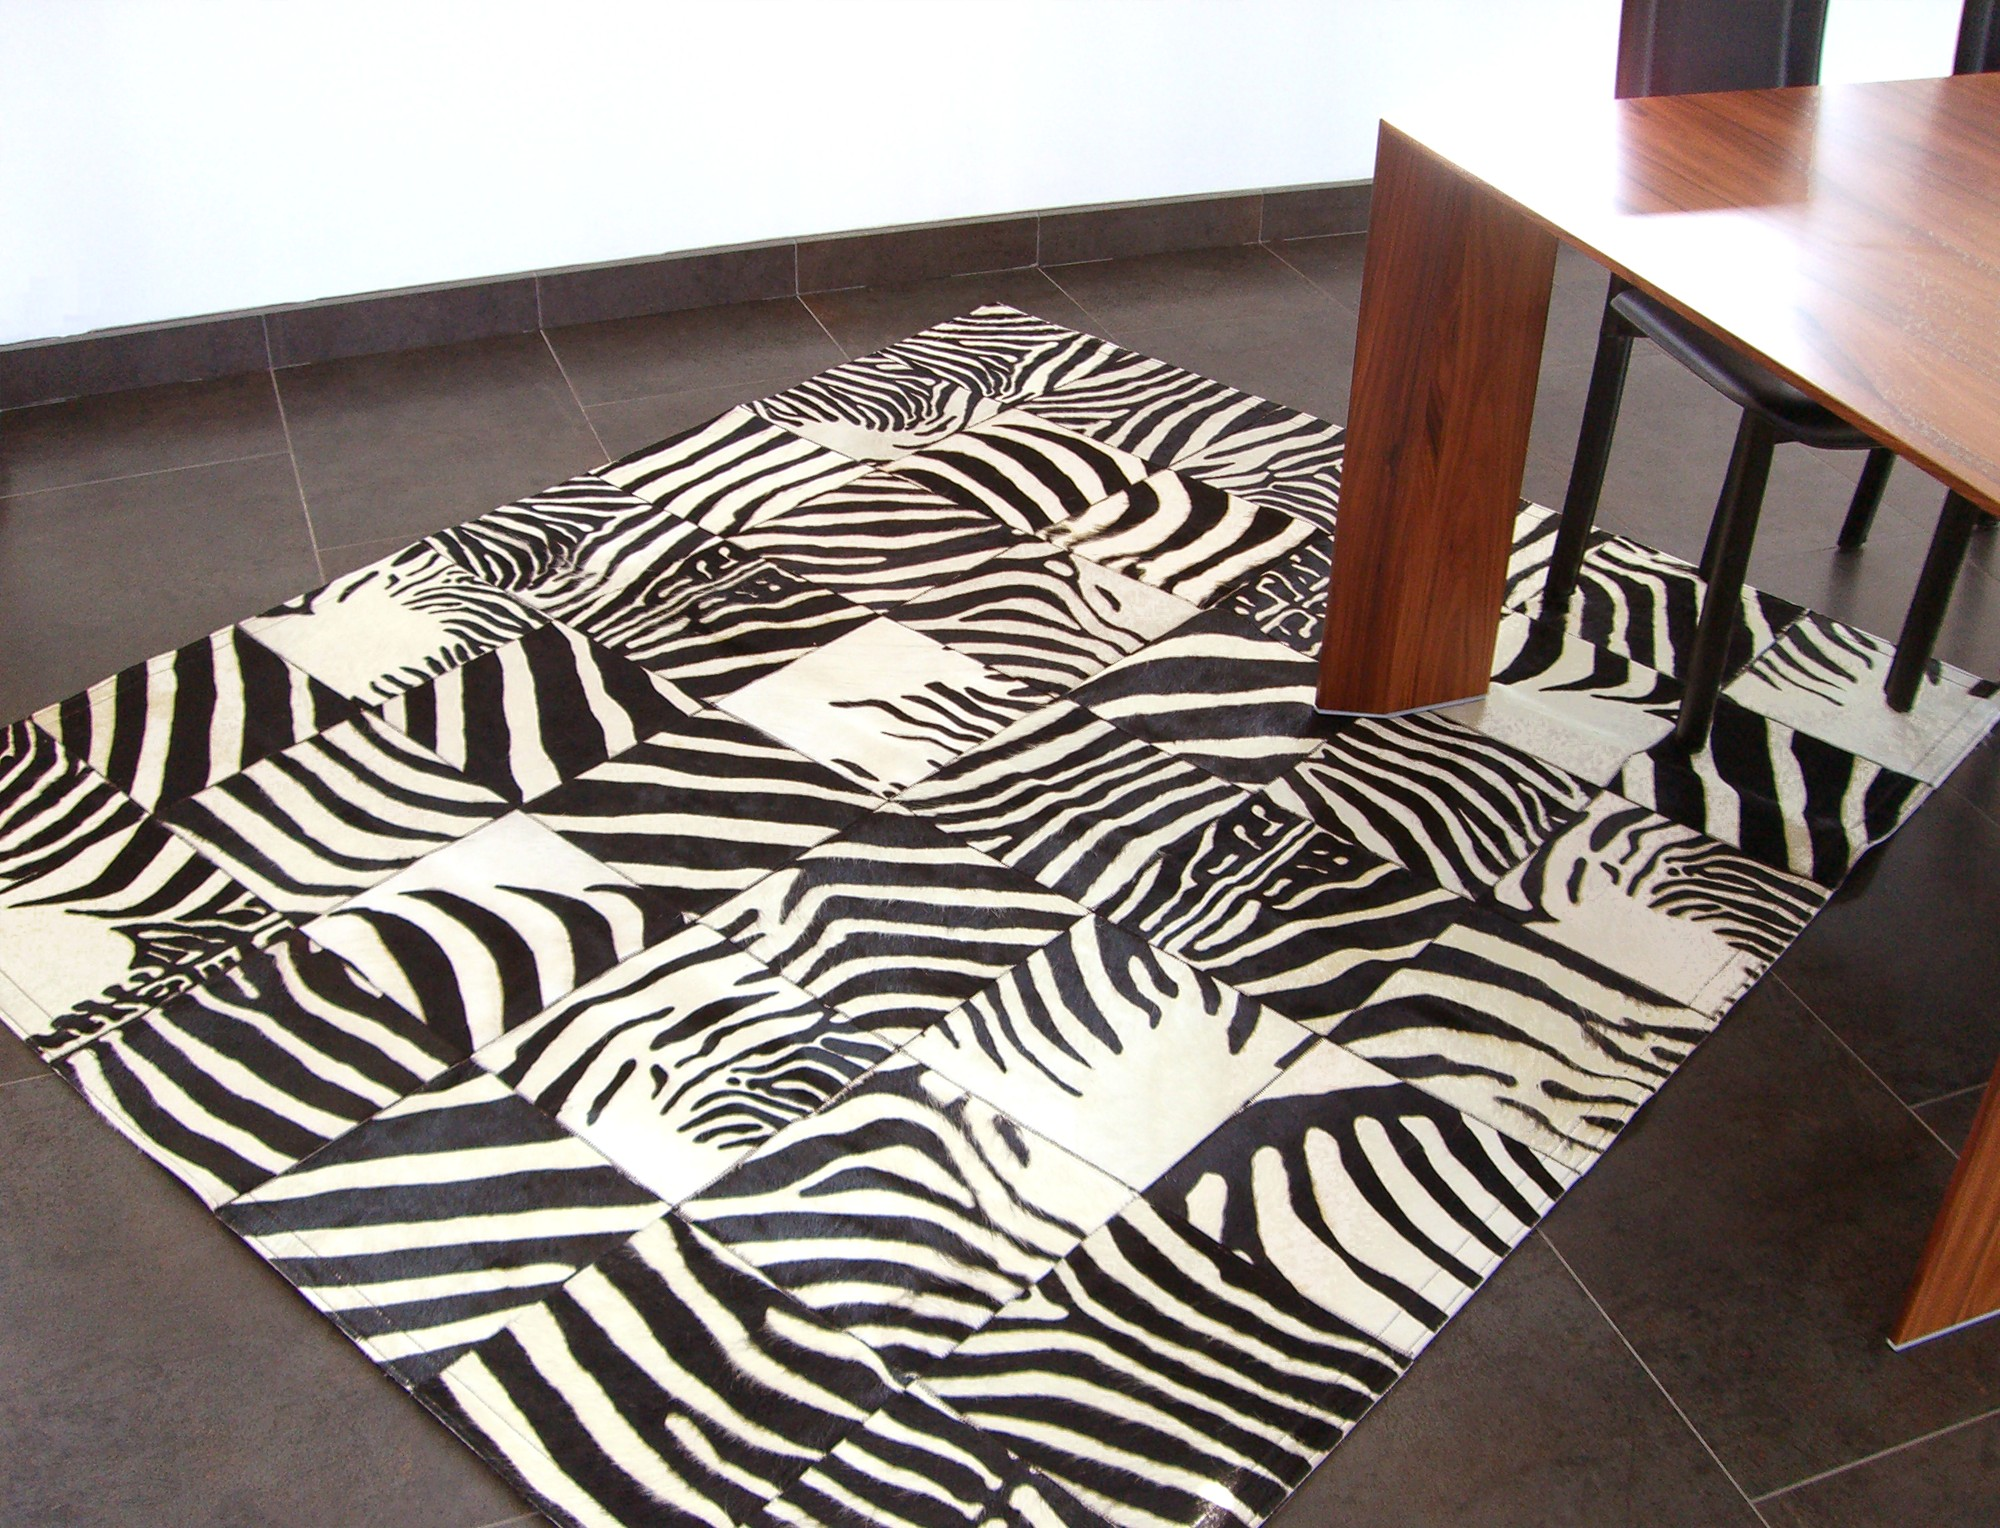 tapis noir et blanc pas cher id es de d coration. Black Bedroom Furniture Sets. Home Design Ideas